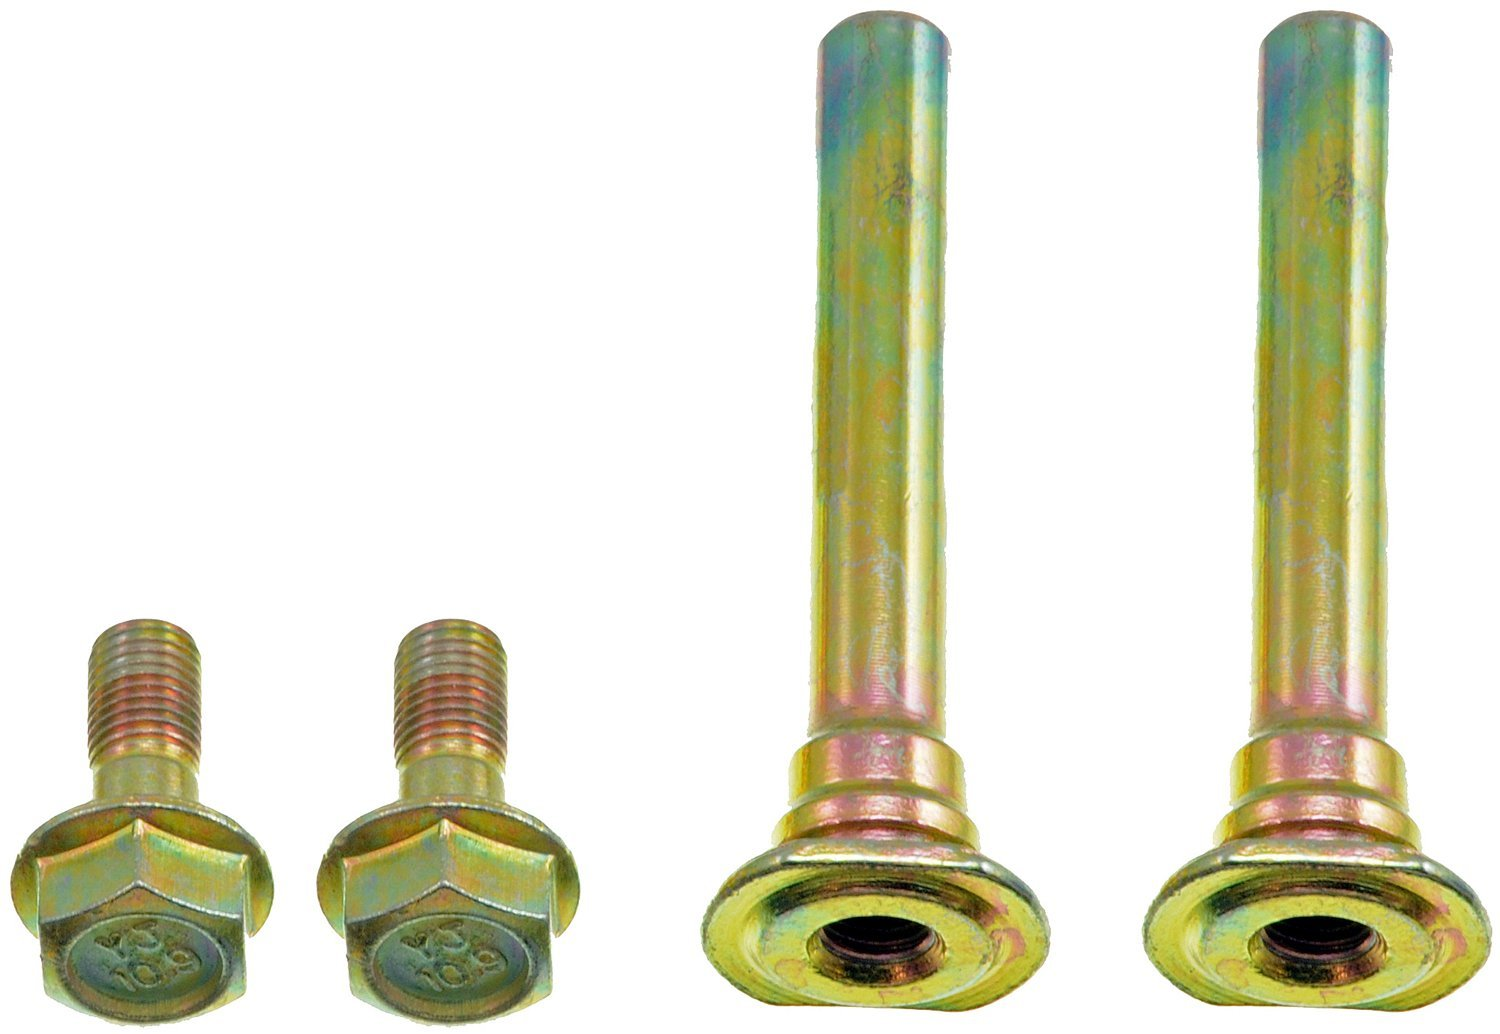 Dorman HW5060 Rear Brake Caliper Bolt